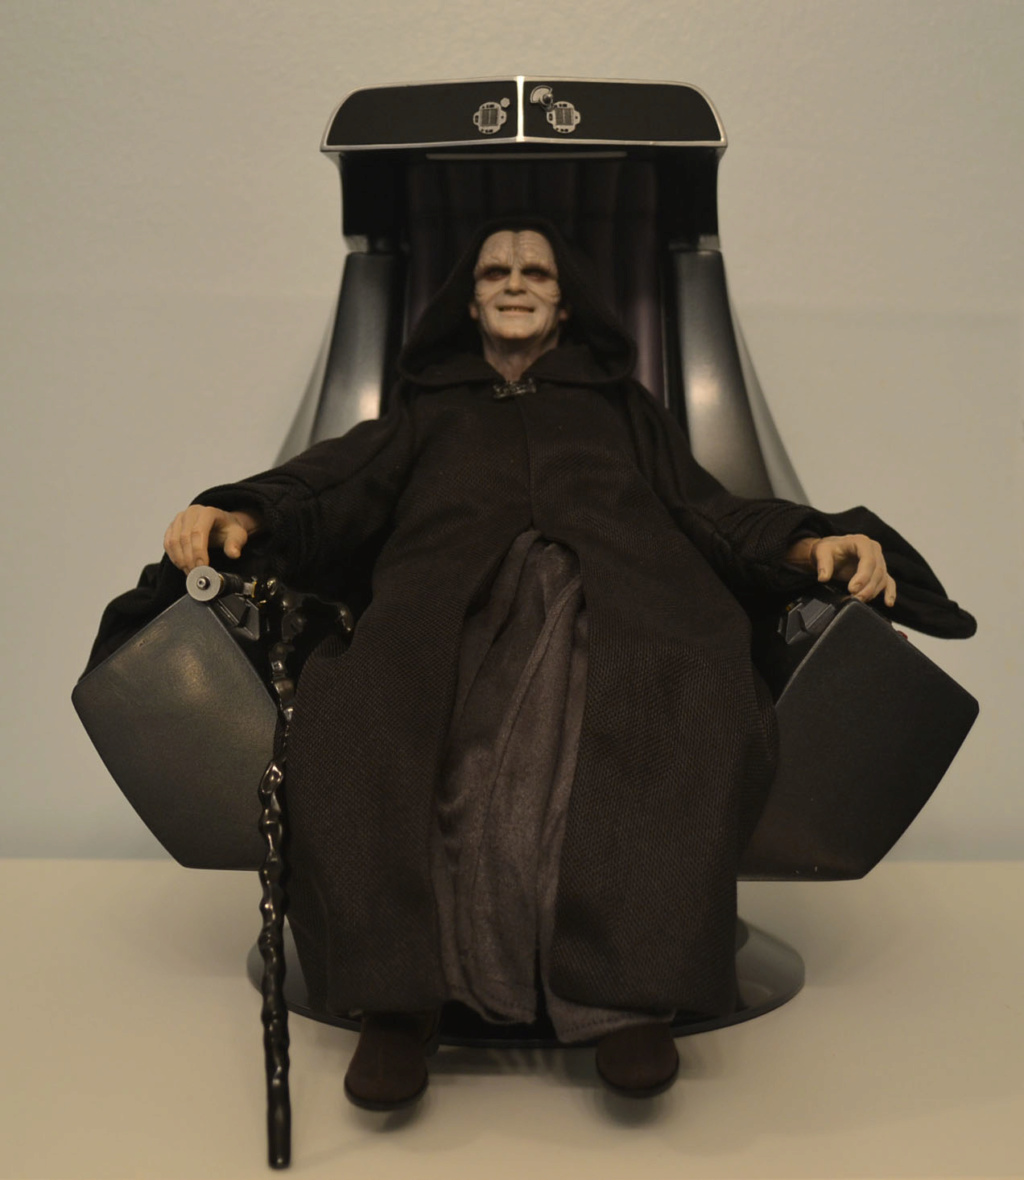 palpatine - Hot Toys Star Wars Emperor Palpatine (Deluxe) Review _dsc2913